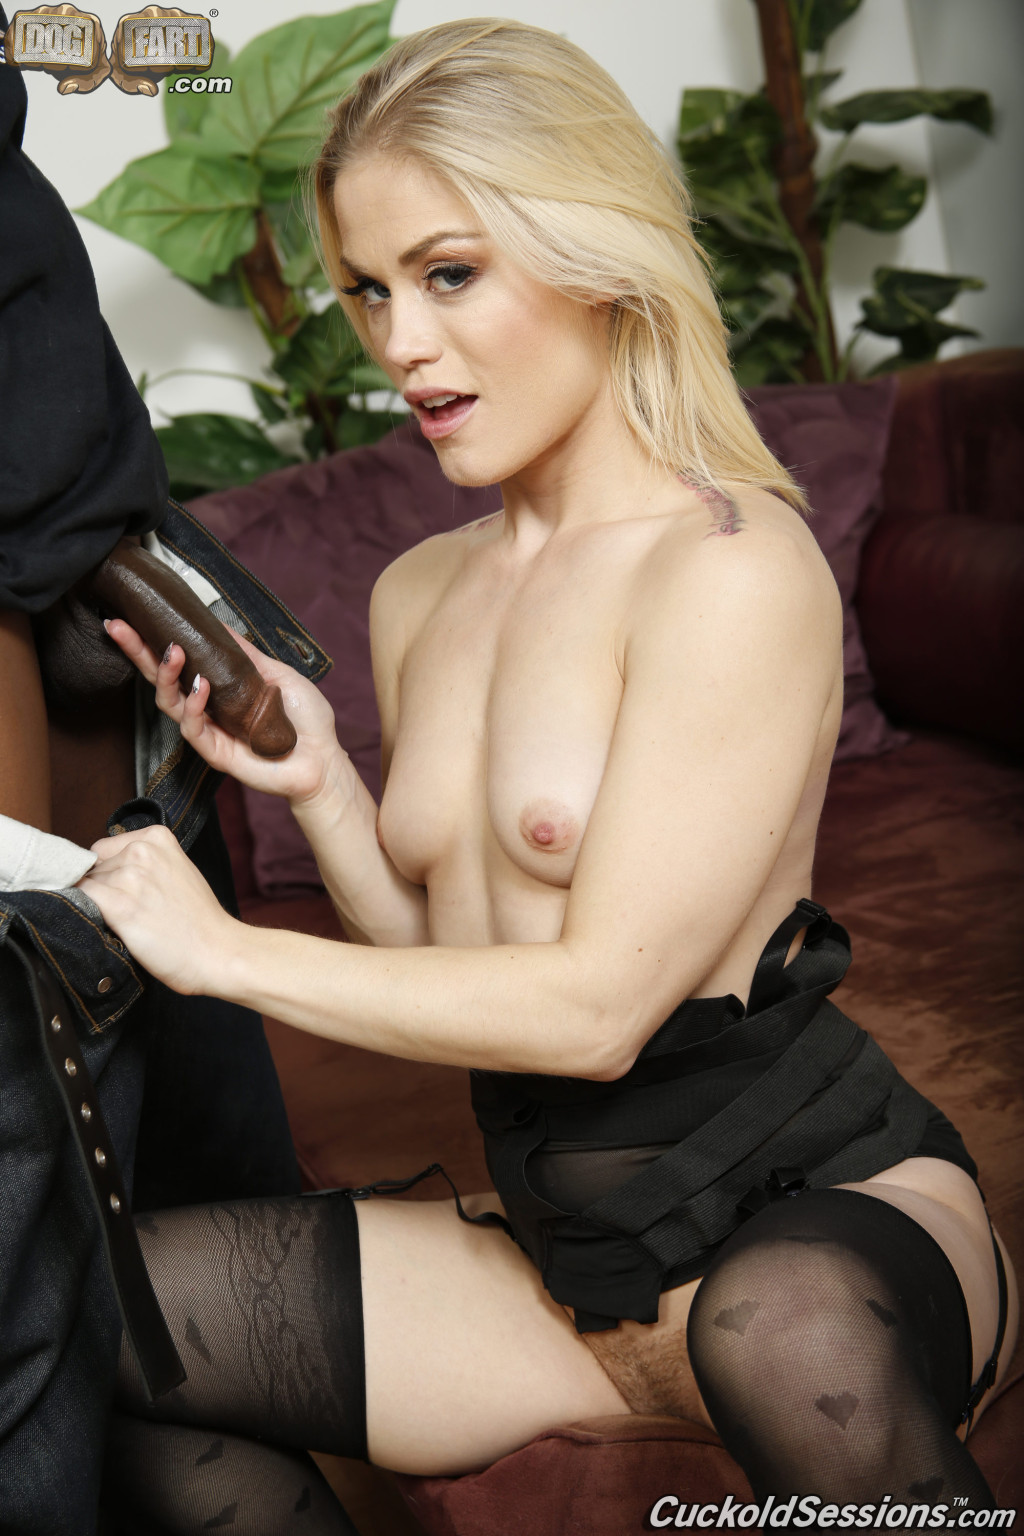 Ash hollywood makes love black horse at the same time as her hubby watches